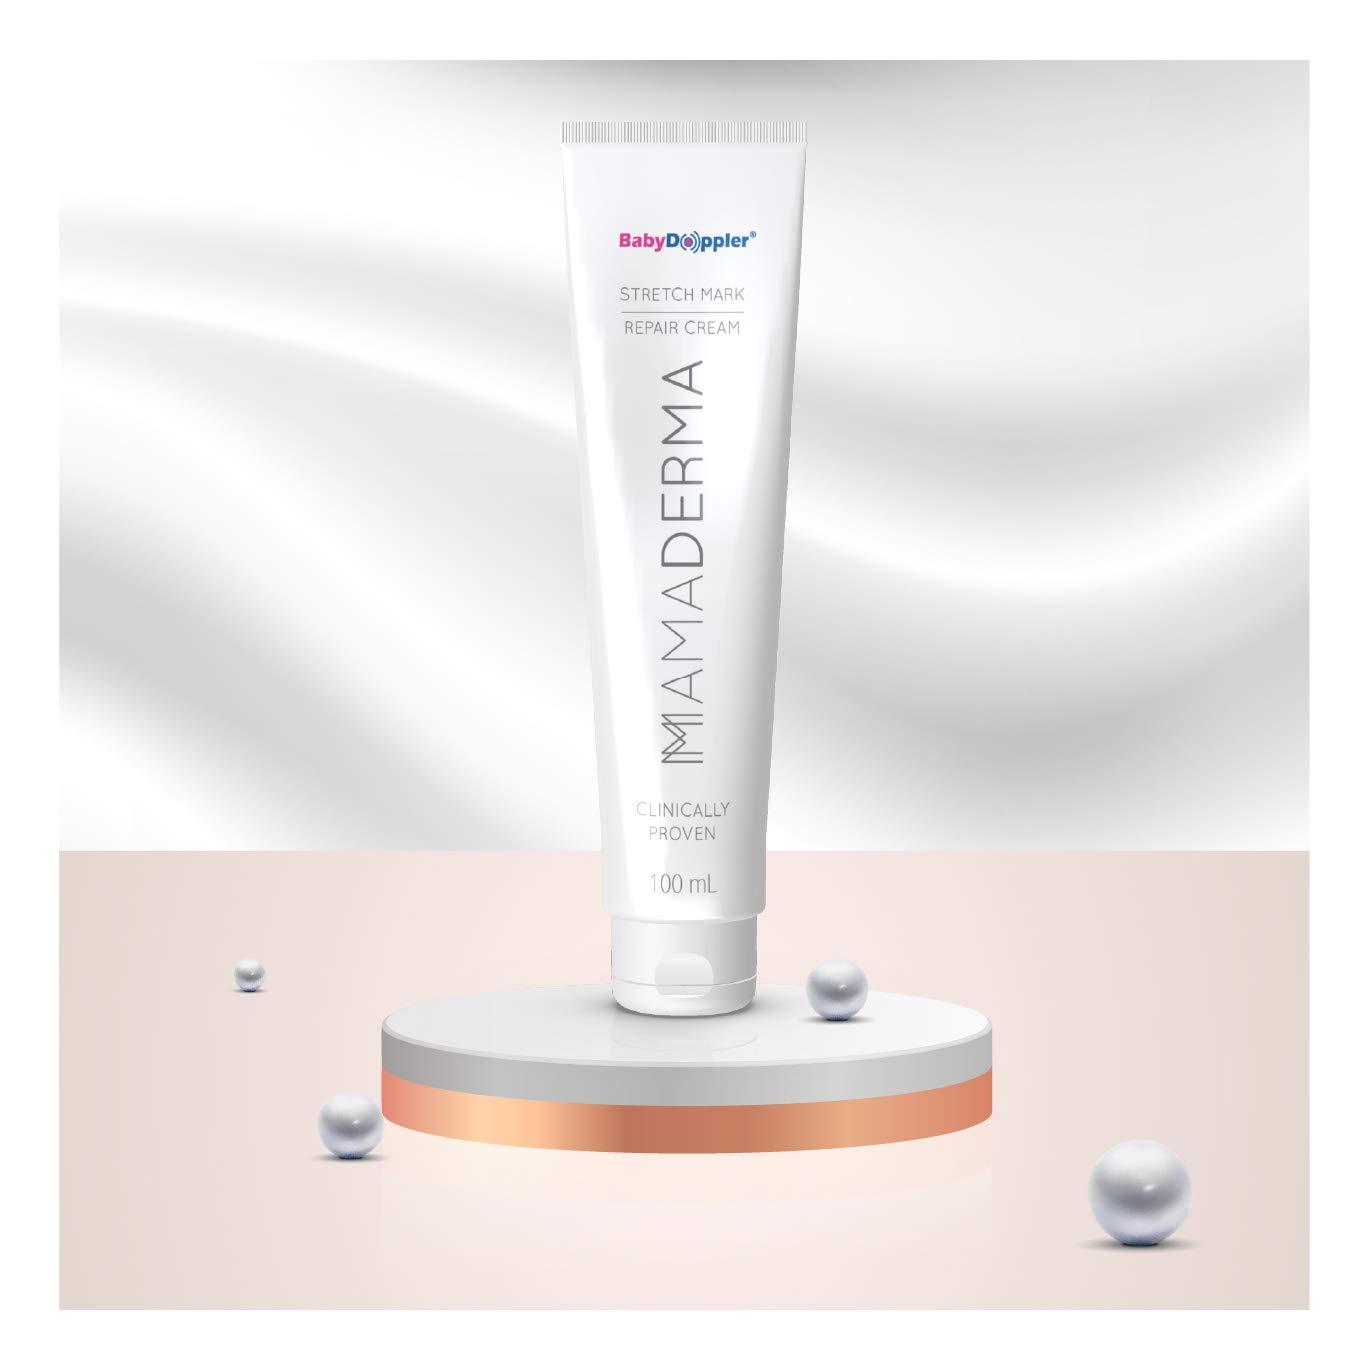 MamaDerma Stretch Mark Repair Cream with Roller Head by Baby Doppler - 100 ml